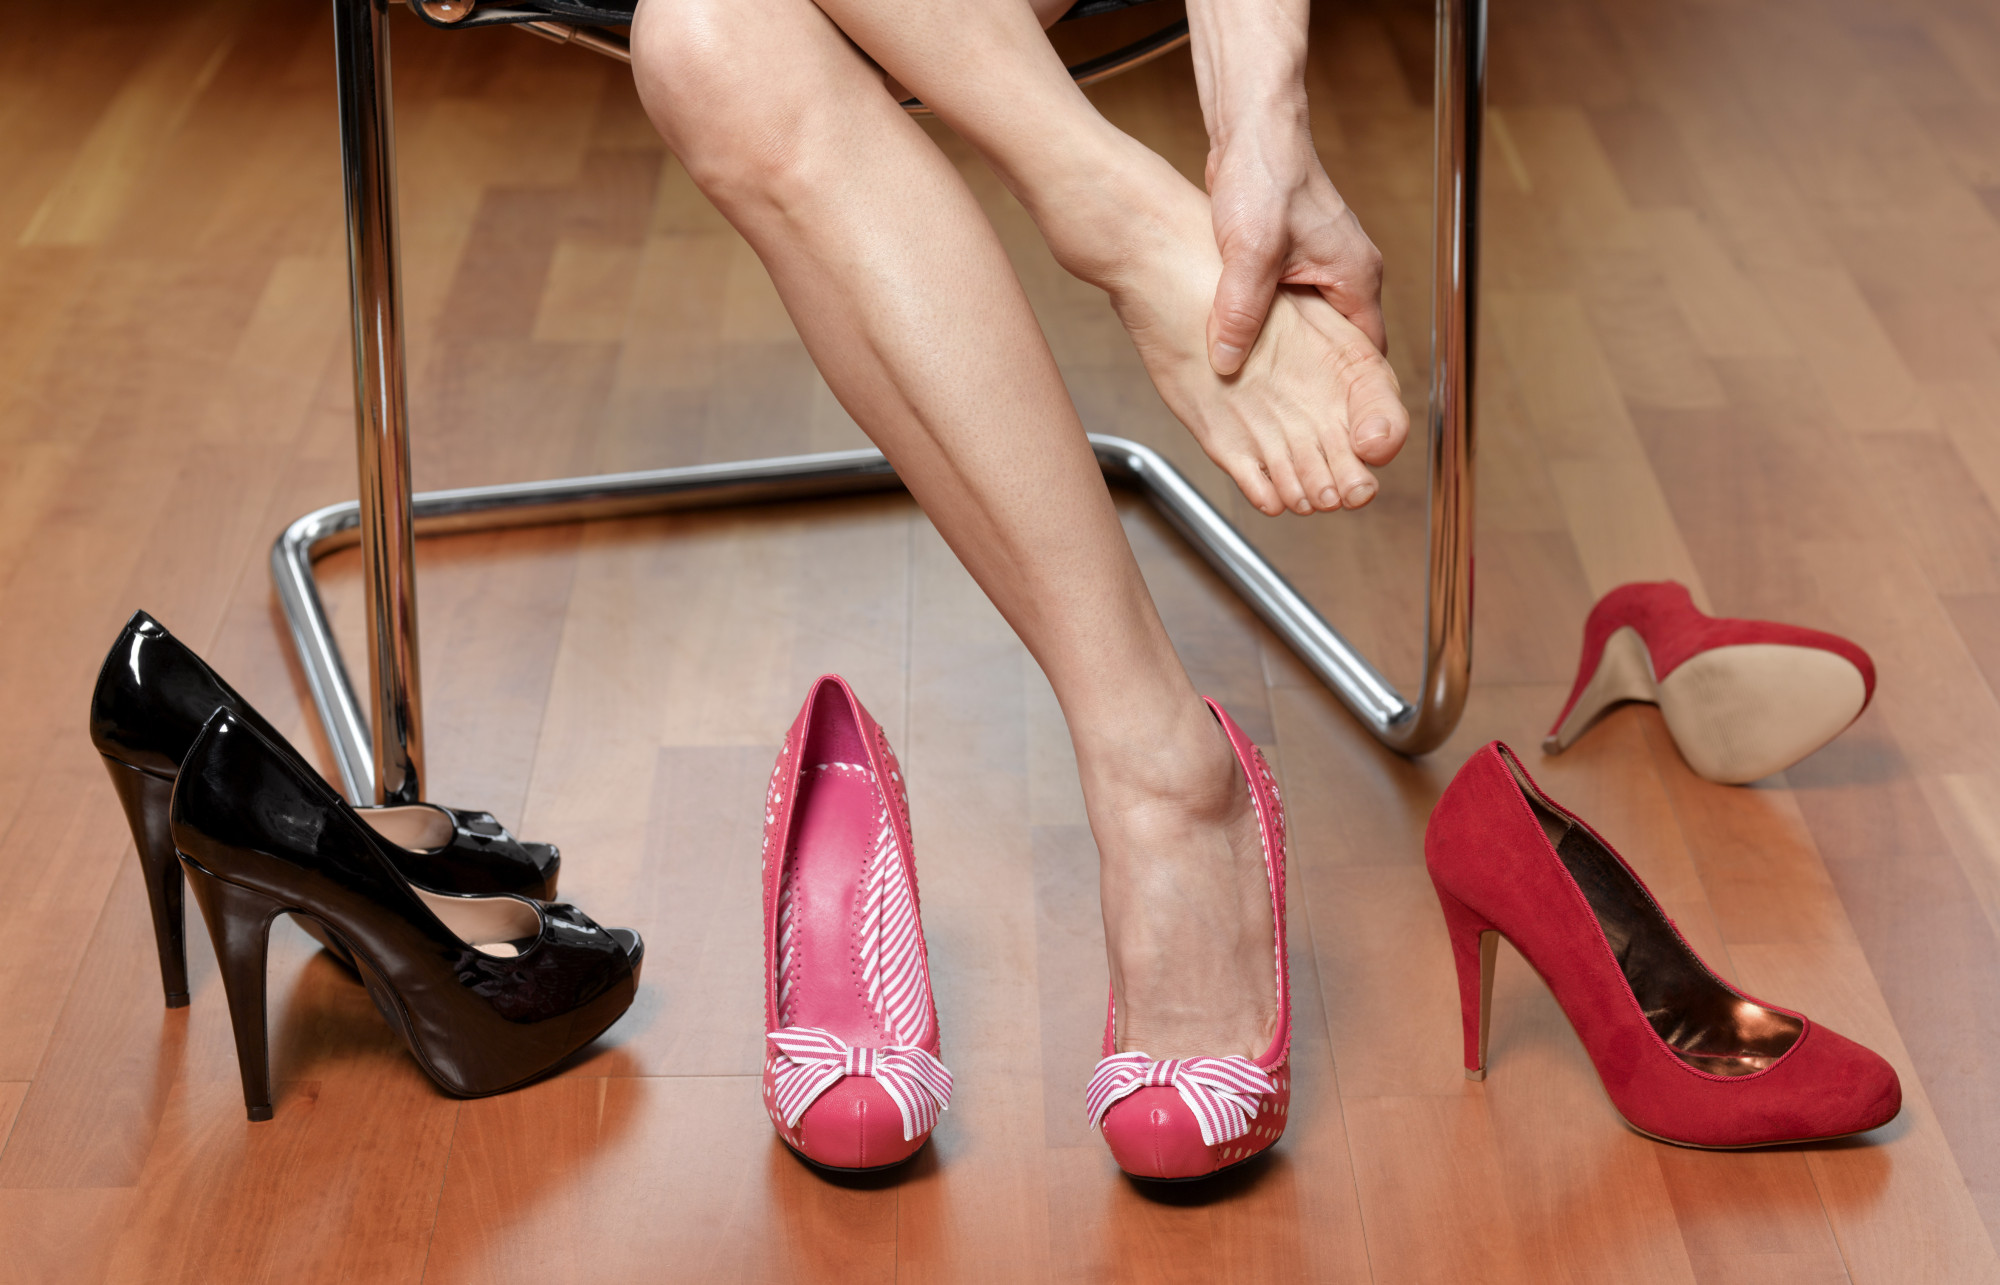 Why Do High Heels Make Women More Attractive? | HuffPost